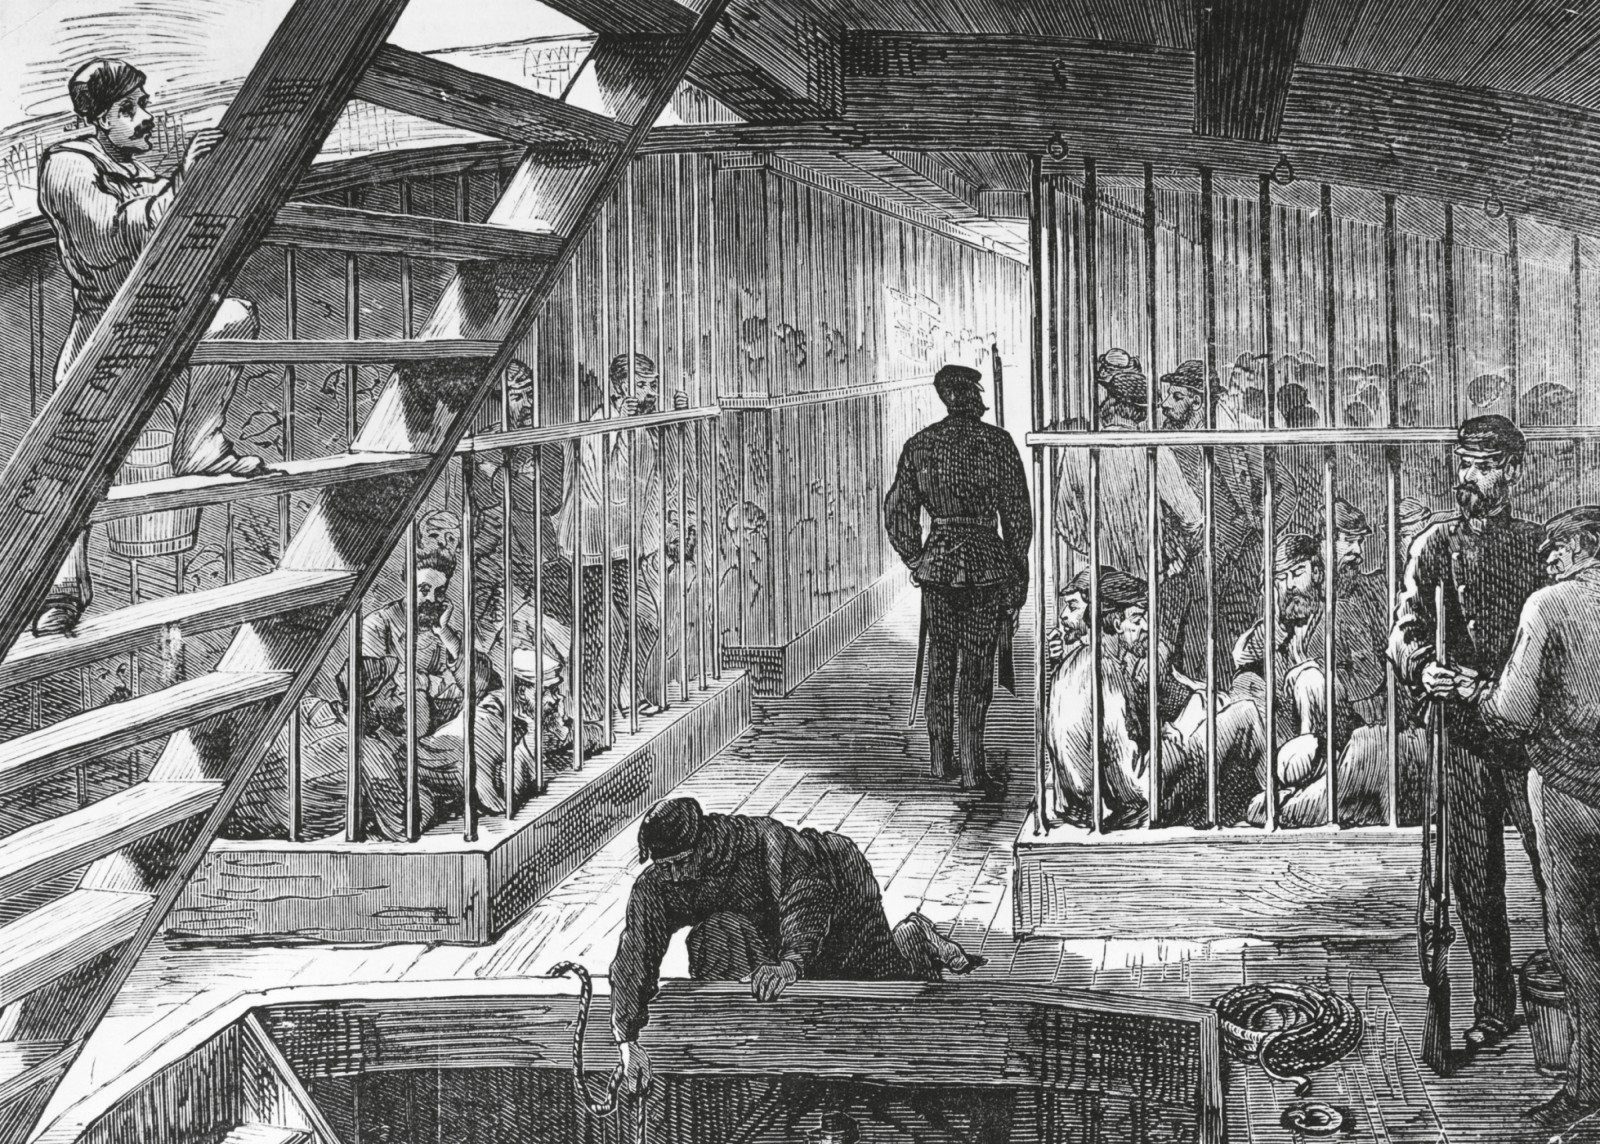 Convicts were housed below on the prison deck and often further confined behind bars. In many cases they were restrained in chains and only allowed on deck for fresh air and exercise. Cruel masters, harsh discipline and scurvy, dysentery and typhoid whittled down their numbers on the high seas. These attrition rates prompted authorities to review the system in 1801, after which ships were dispatched twice a year, at the end of May and the beginning of September, to avoid the dangerous winters of the Southern hemisphere.